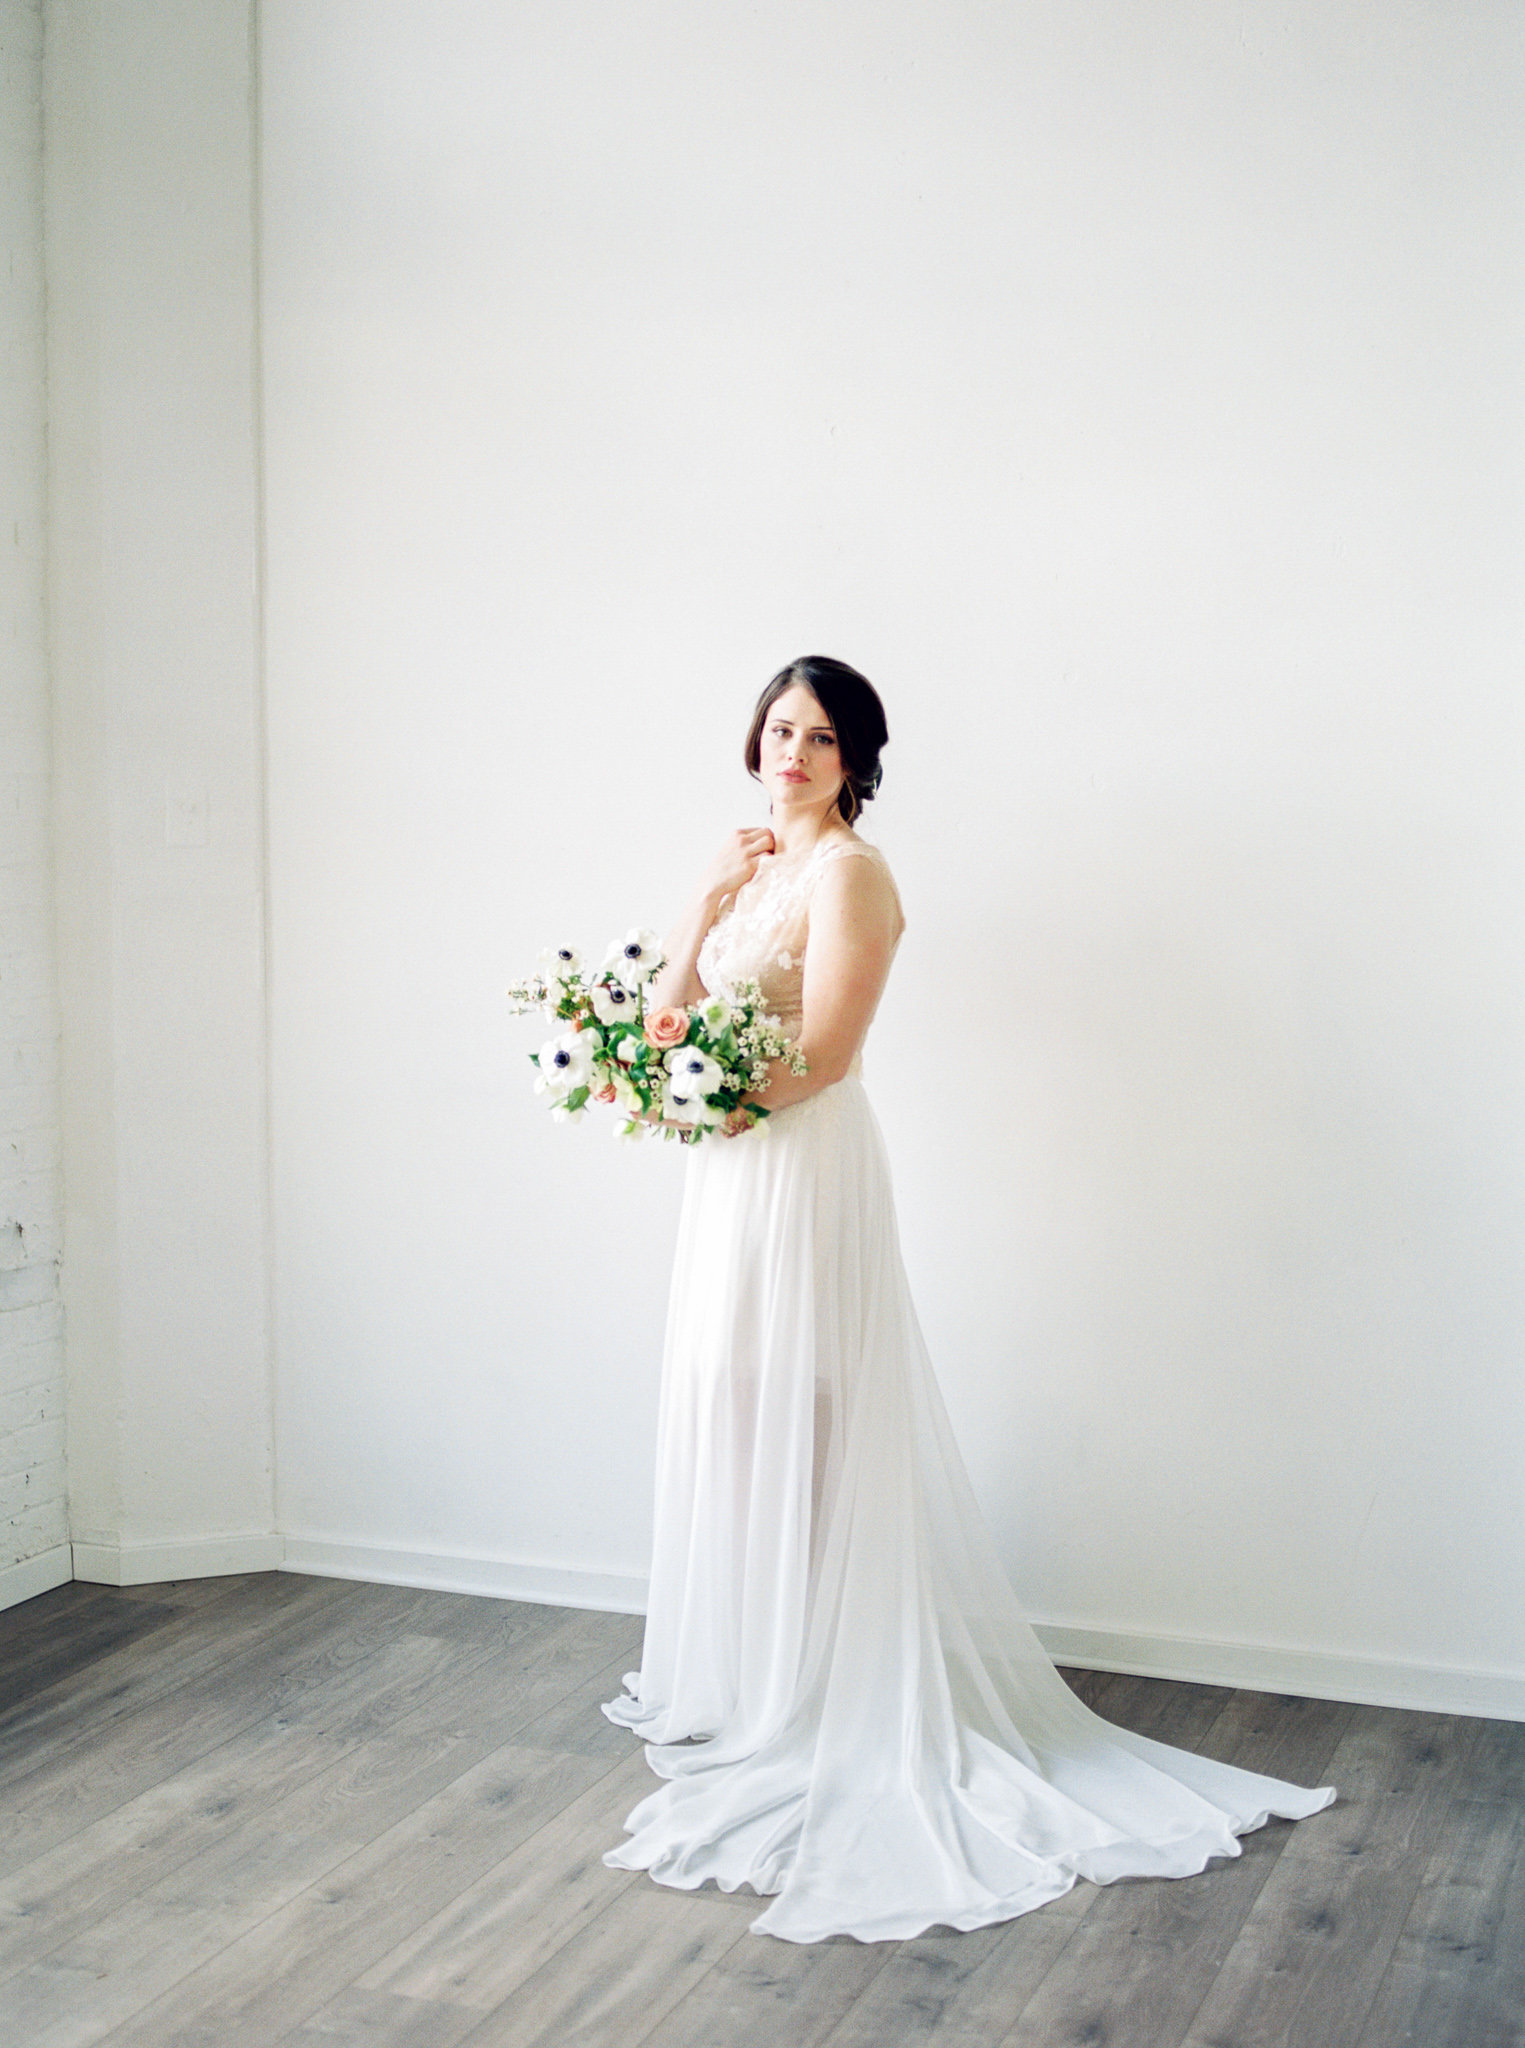 Minimalist-Bride-Georgia-Ruth-Photography-12